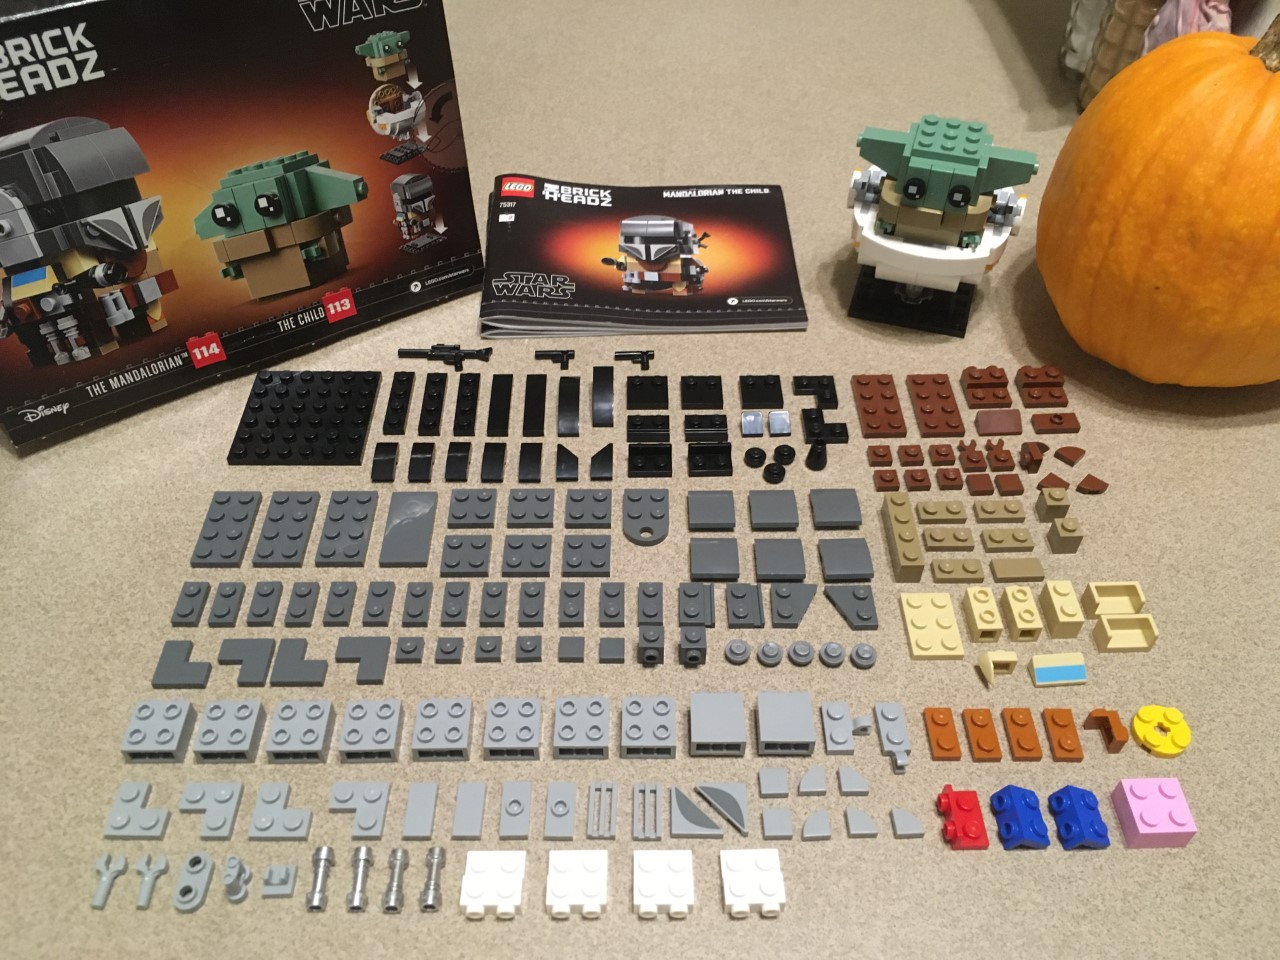 Me knolling Star Wars The Mandalorian LEGO set before building it. Some of you, like me looking at the photo now, will notice the black piece out of place and be annoyed by it.